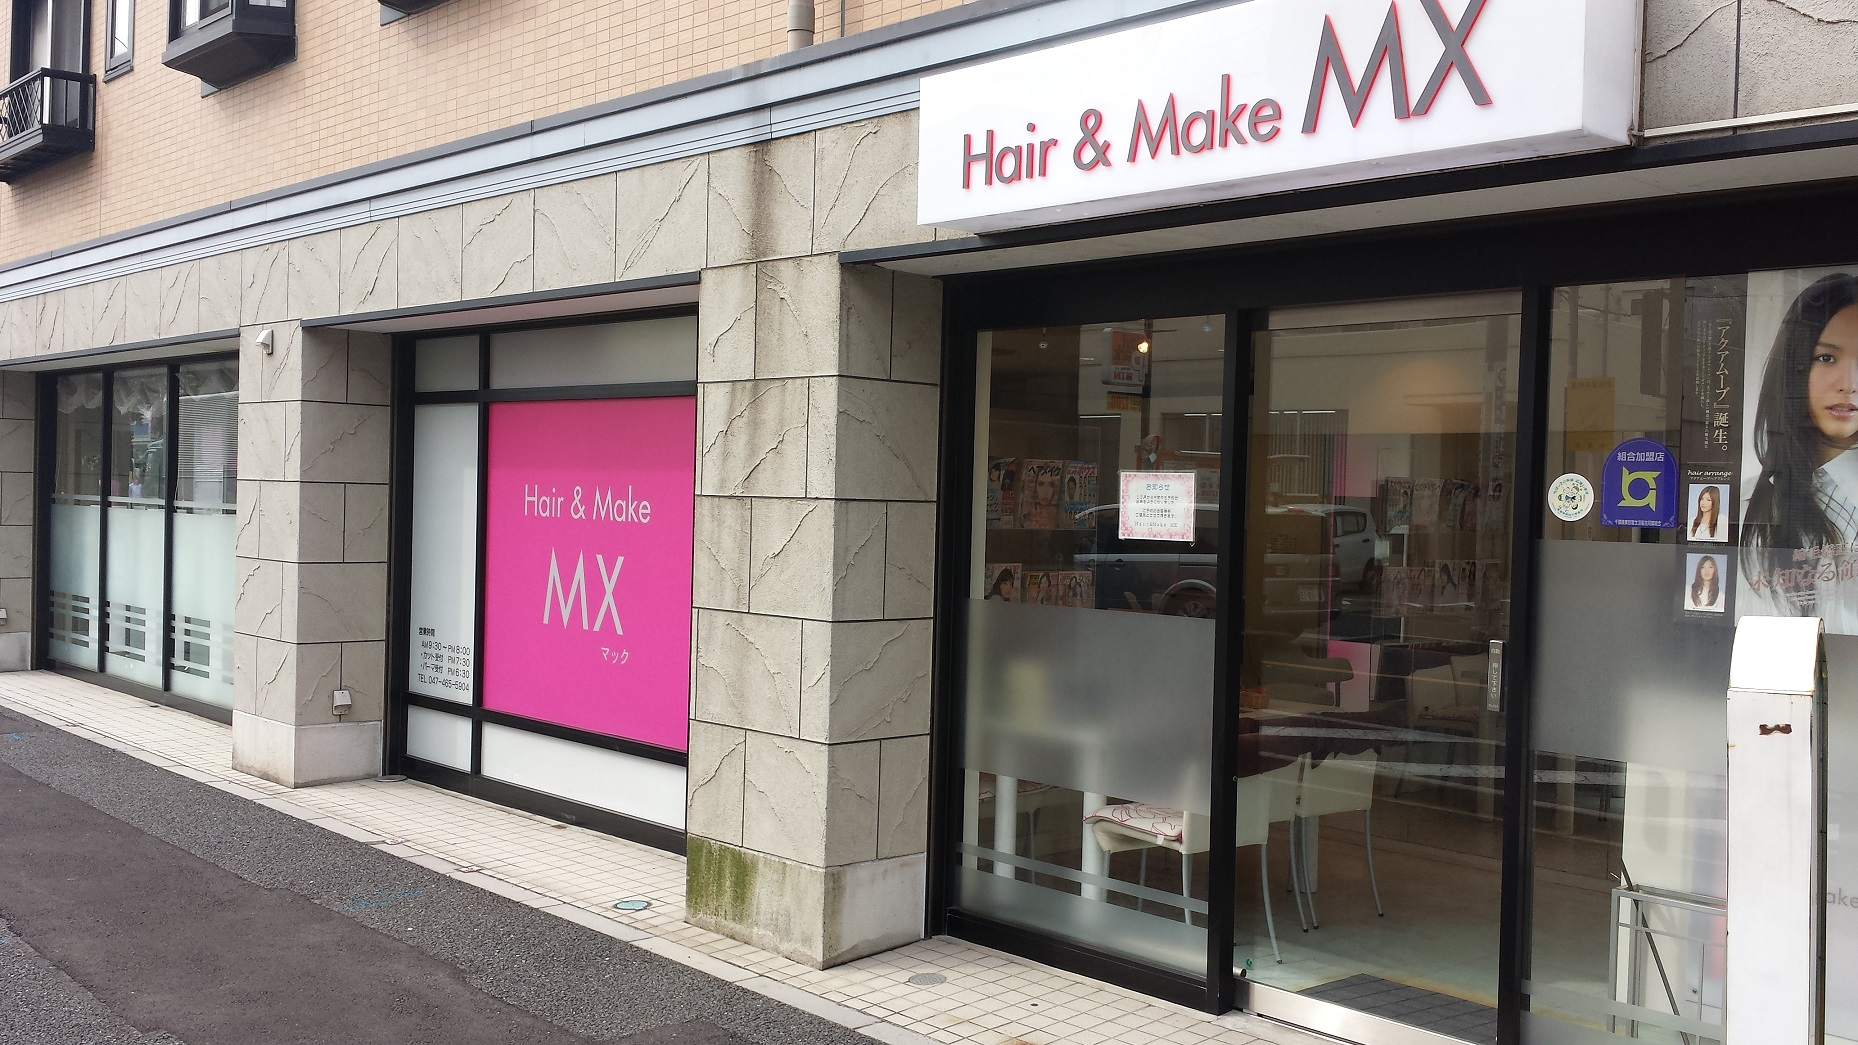 Hair make MX